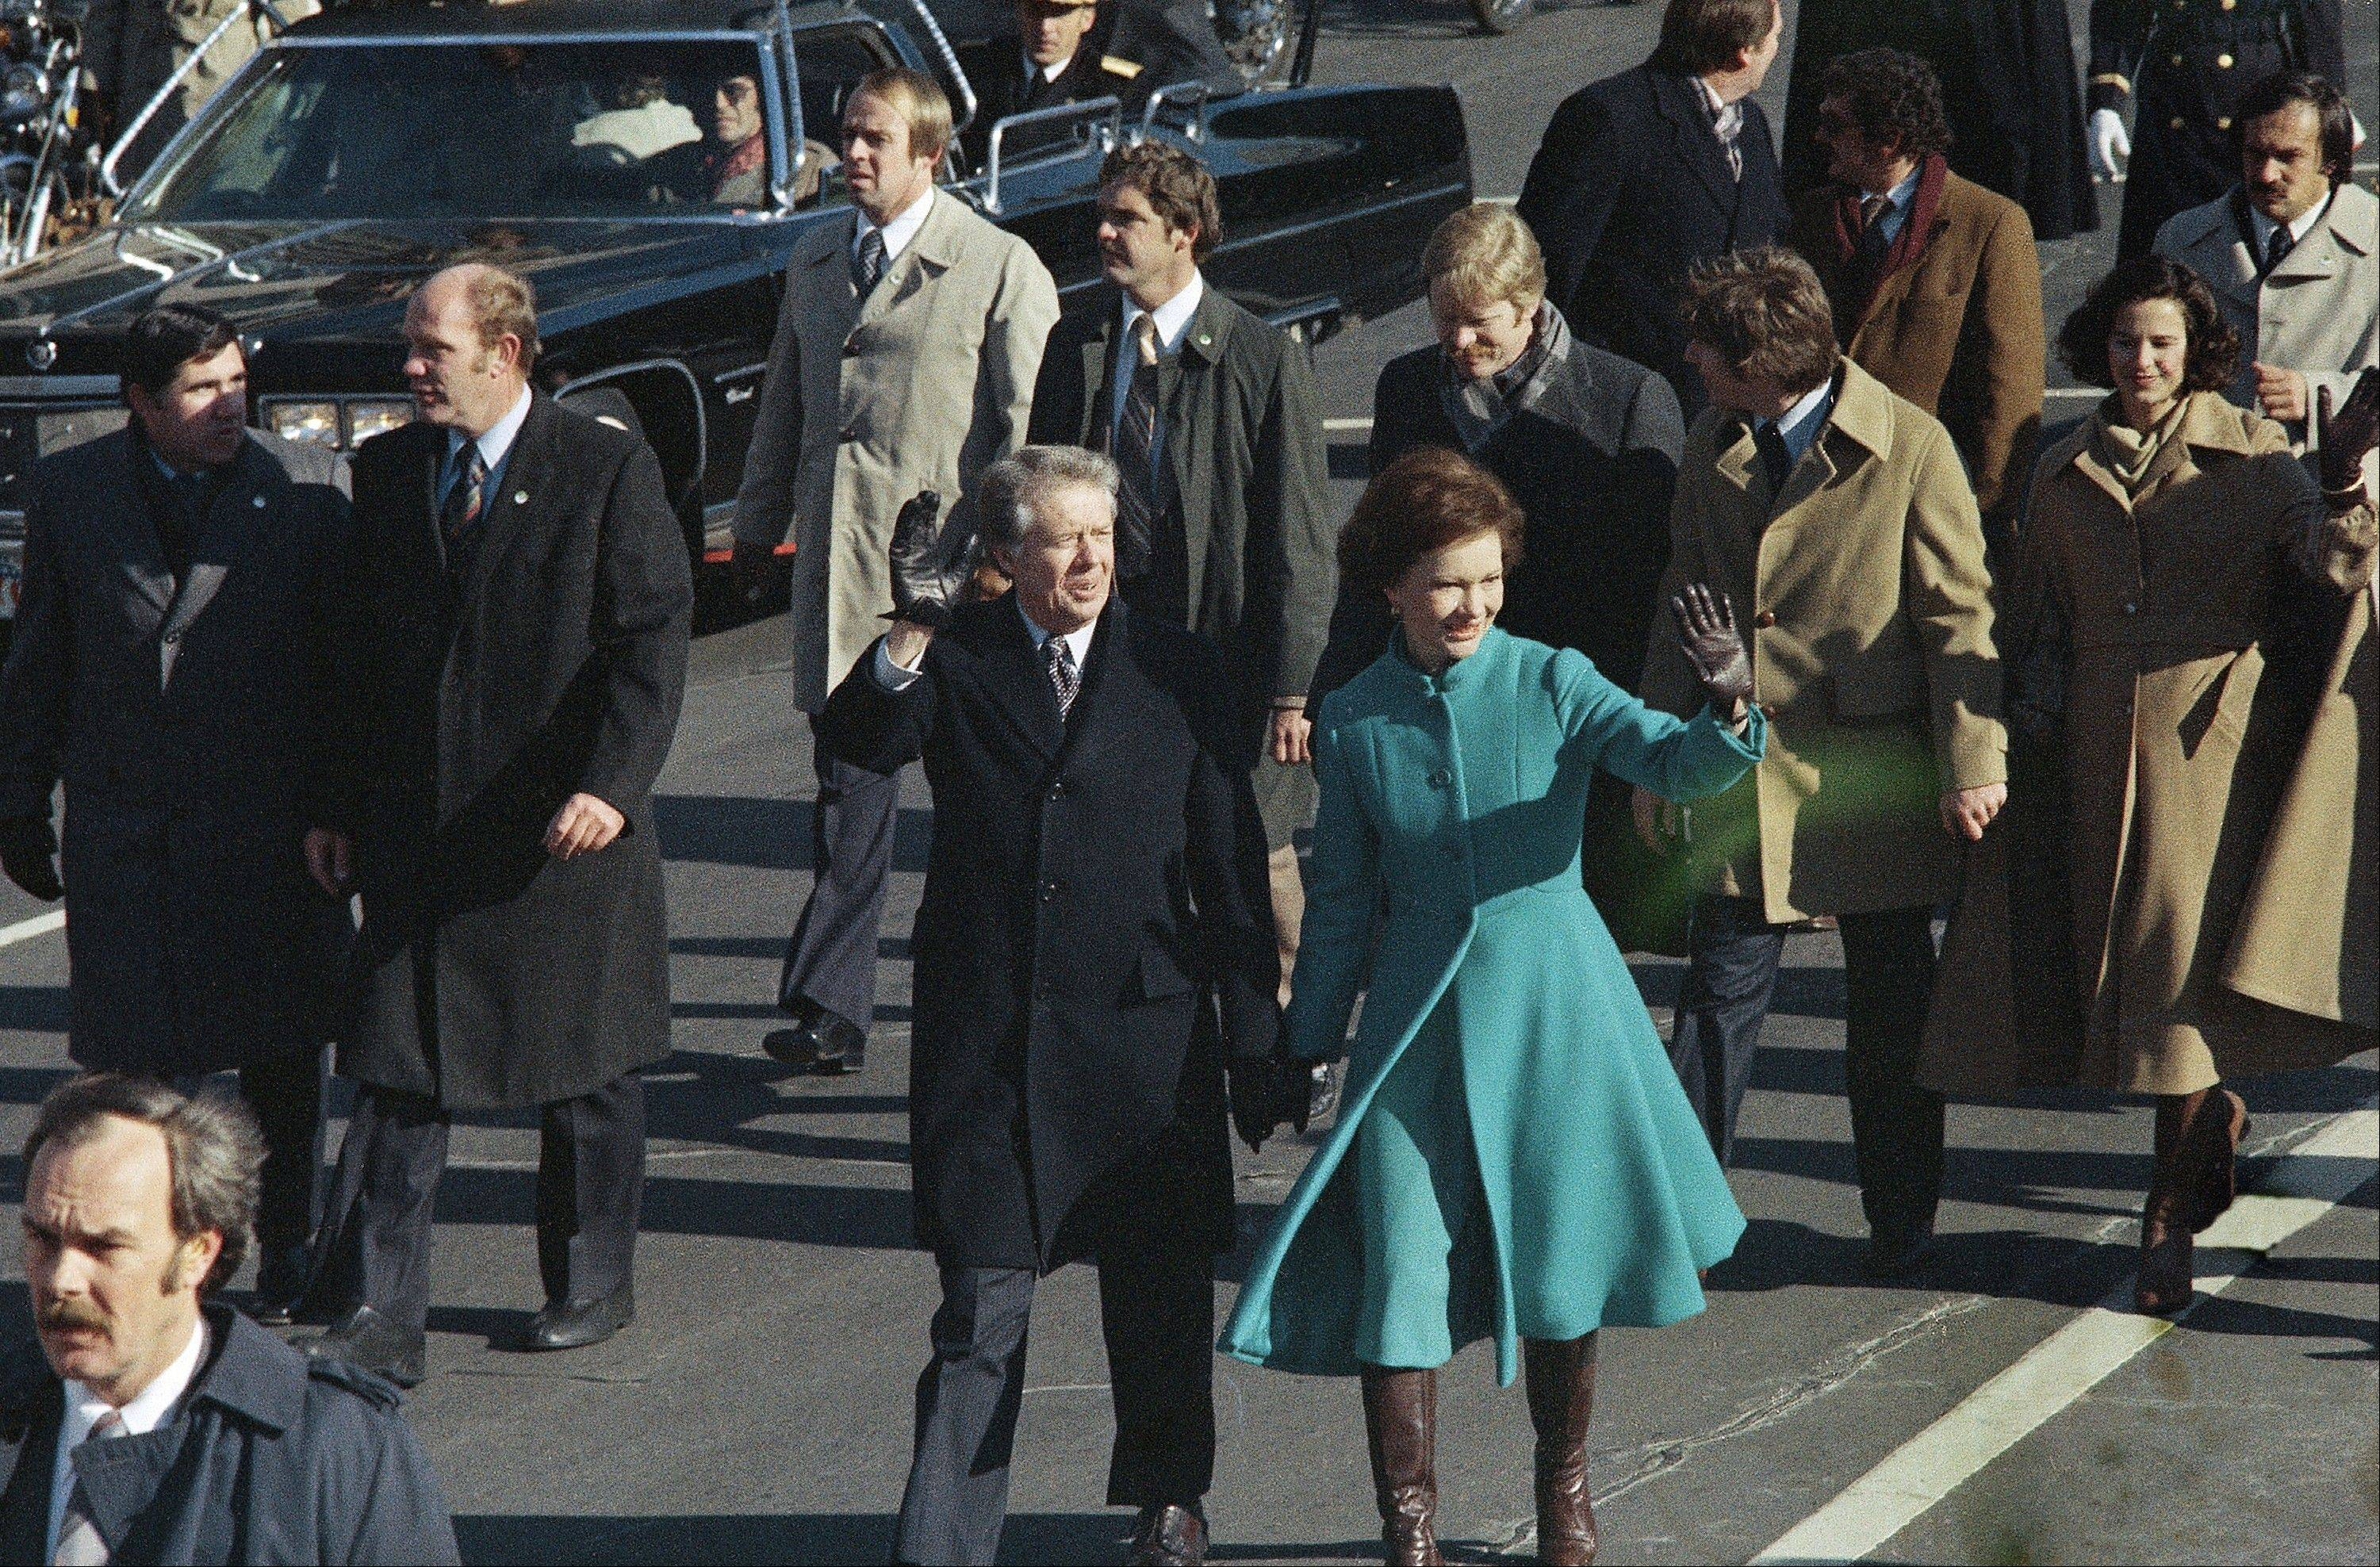 President Jimmy Carter and first lady Rosalynn Carter started the tradition of walking down Pennsylvania Avenue in Washington after being sworn in as president.